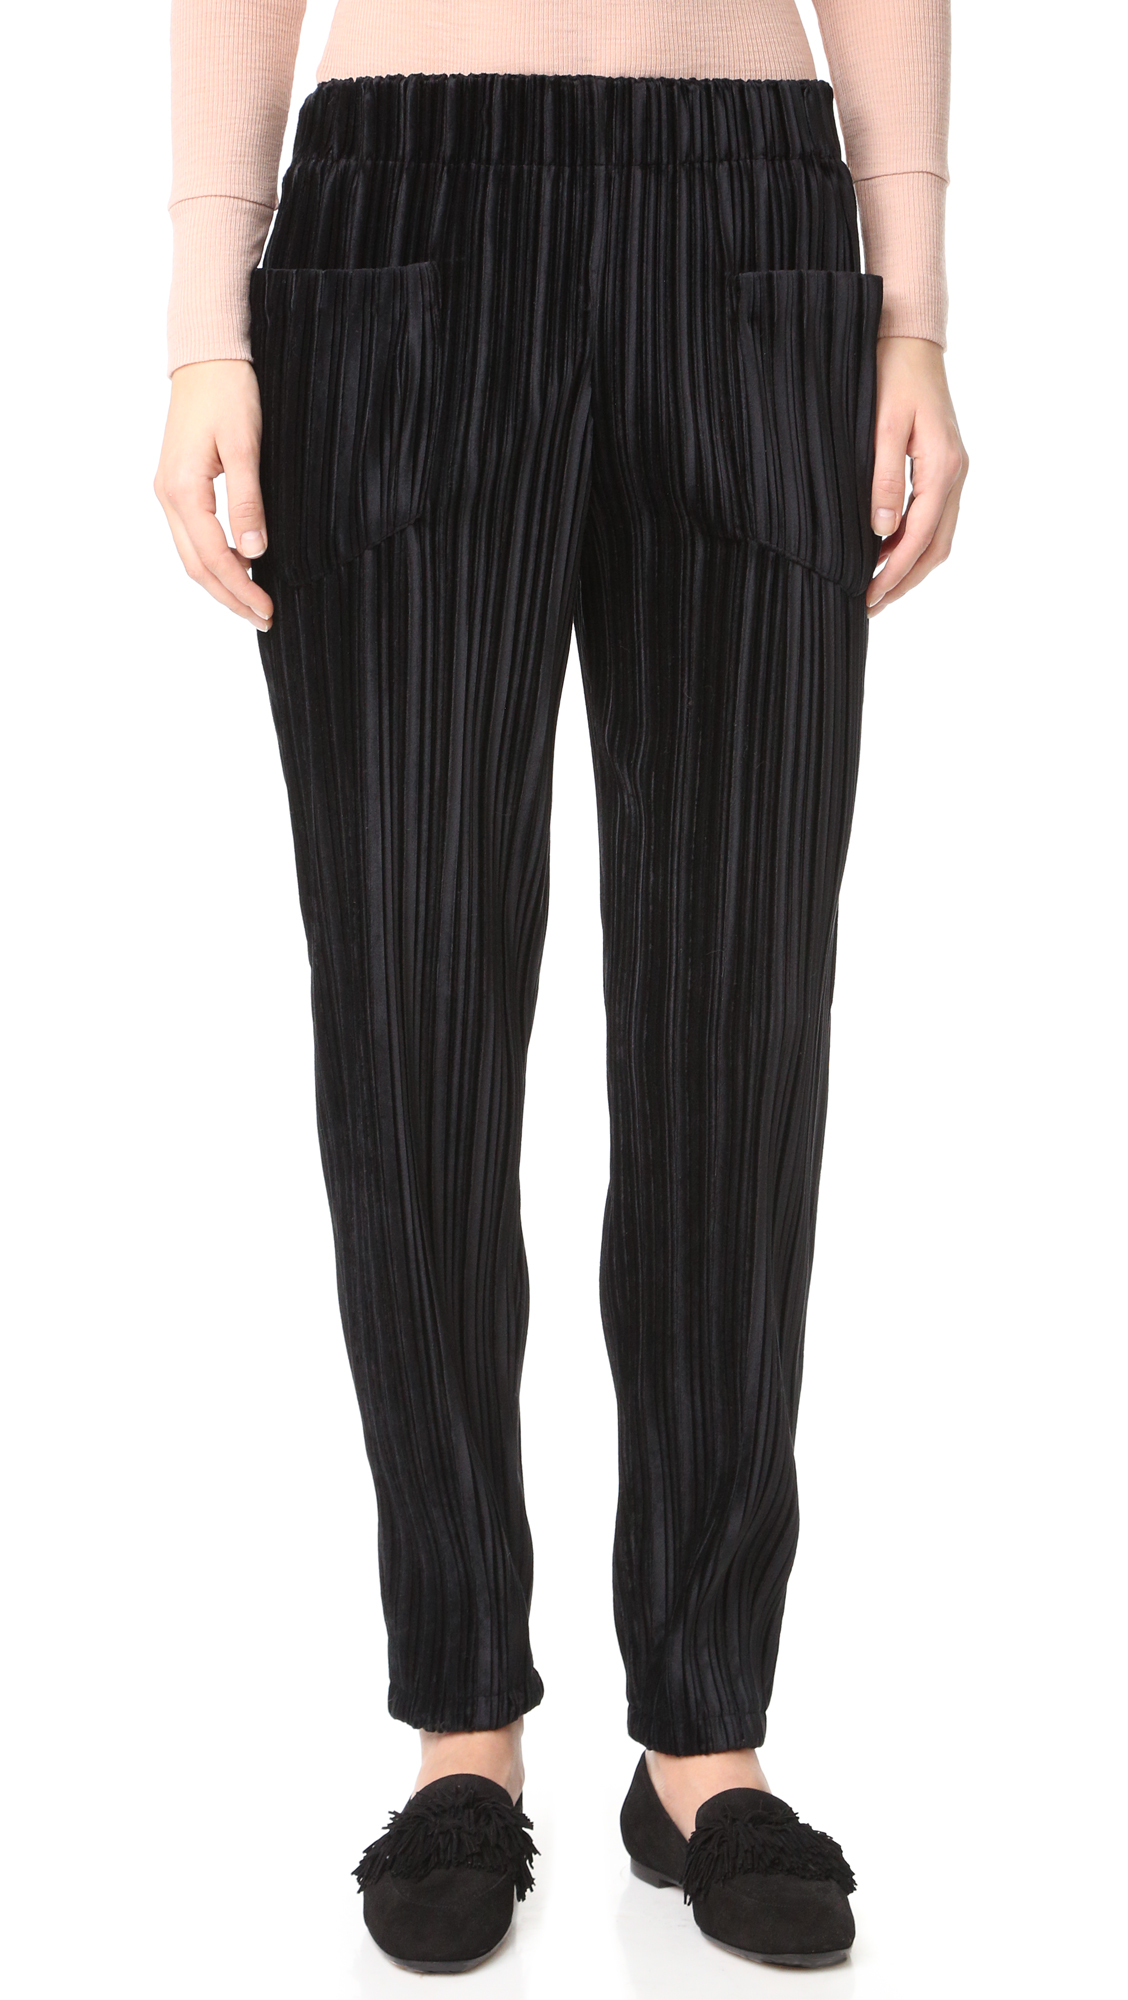 Ribbed velvet Intropia trousers in a slim silhouette. Patch hip pockets. Covered elastic waistband. Fabric: Velvet. 100% polyester. Hand wash or dry clean. Imported, China. Measurements Rise: 11.5in / 29cm Inseam: 28.25in / 72cm Leg opening: 11.75in / 30cm Measurements